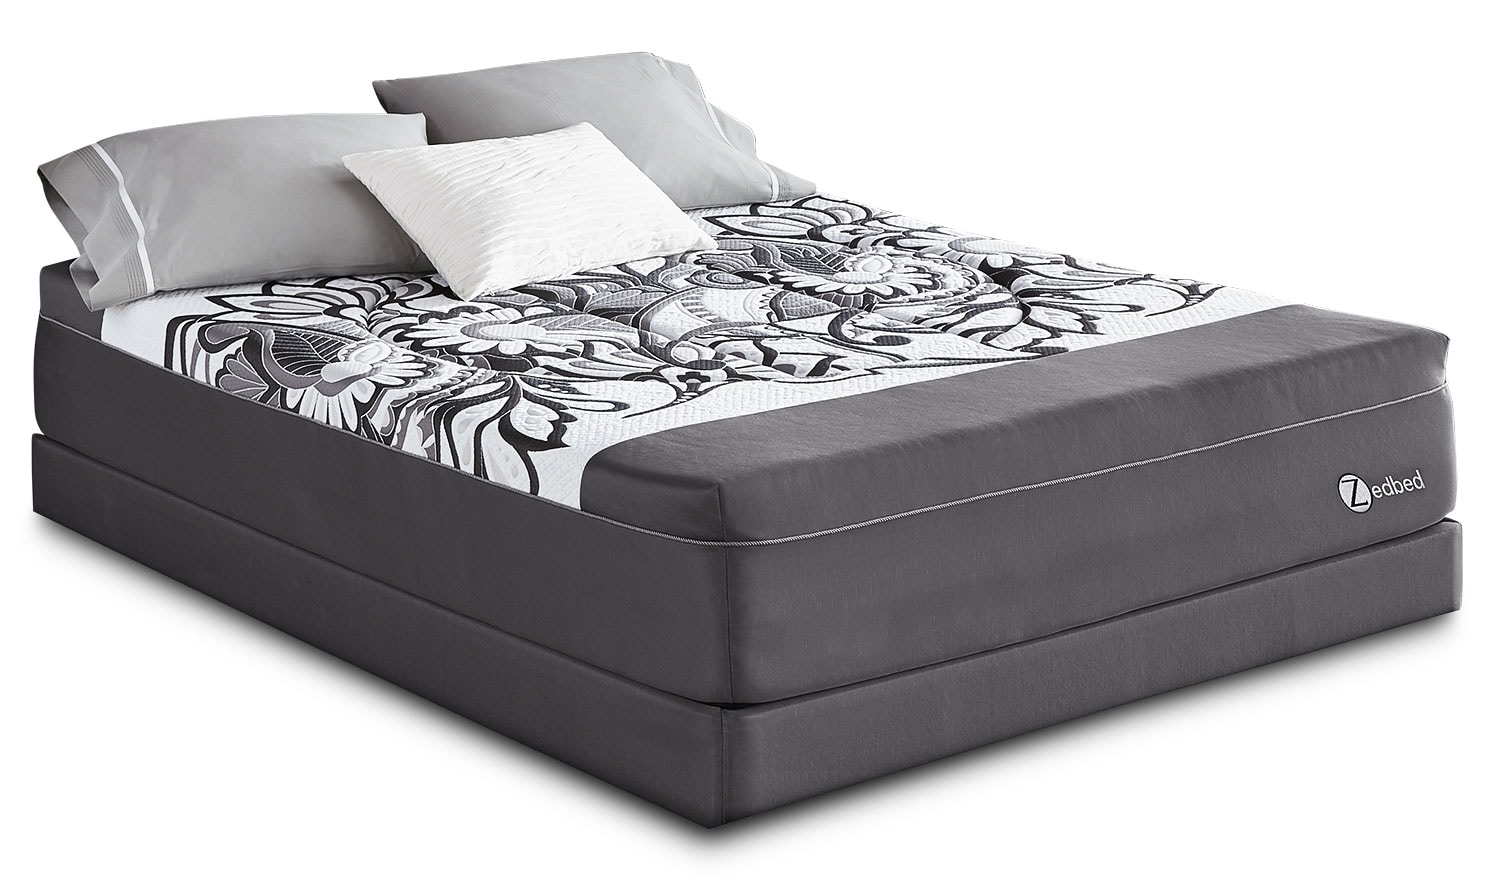 Mattresses and Bedding - Zedbed Vertuo Deluxe Tight-Top Queen Mattress Set